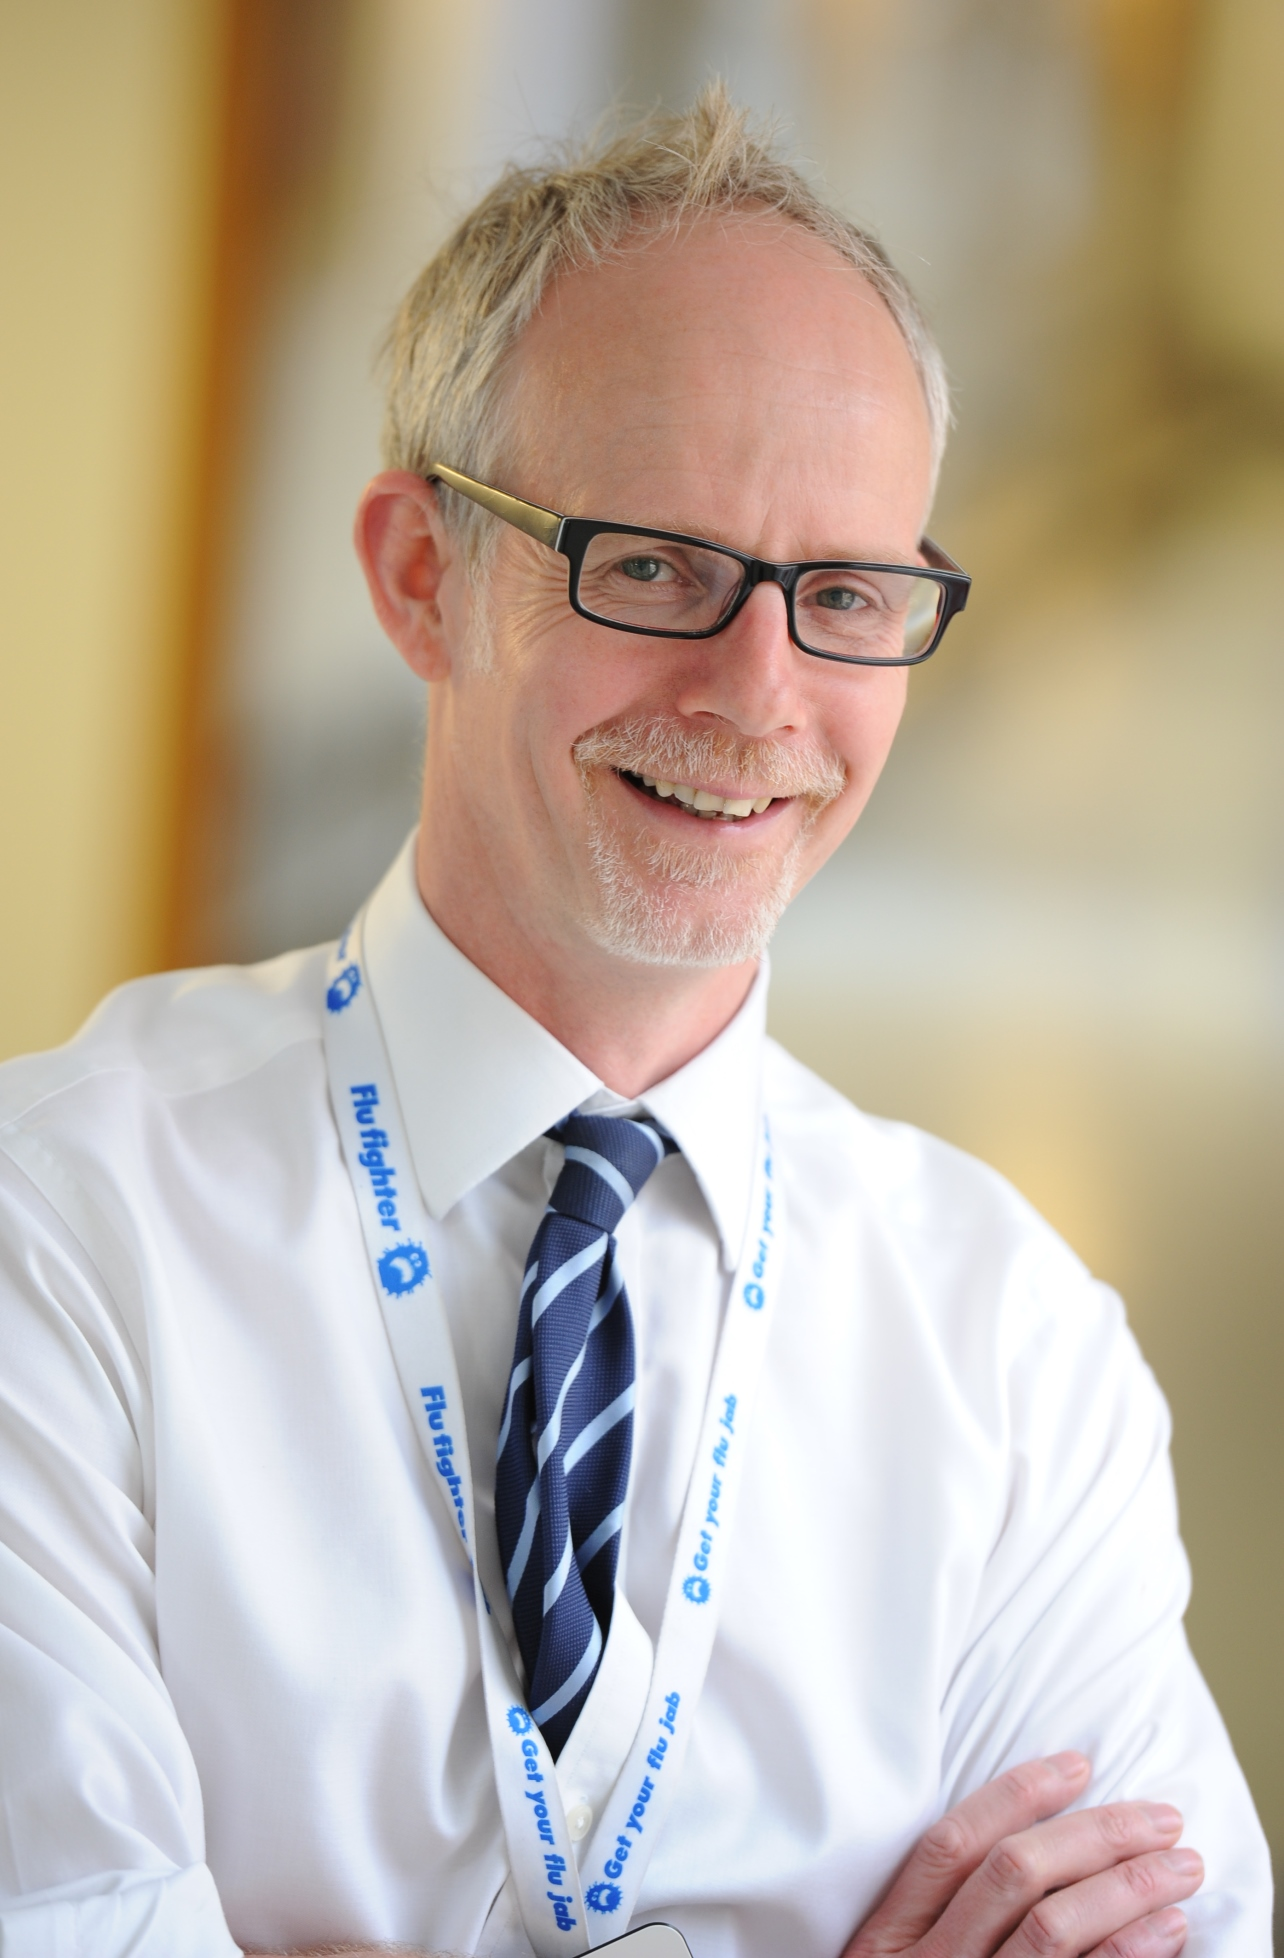 Chief executive Steve Dunn shares what he is known for